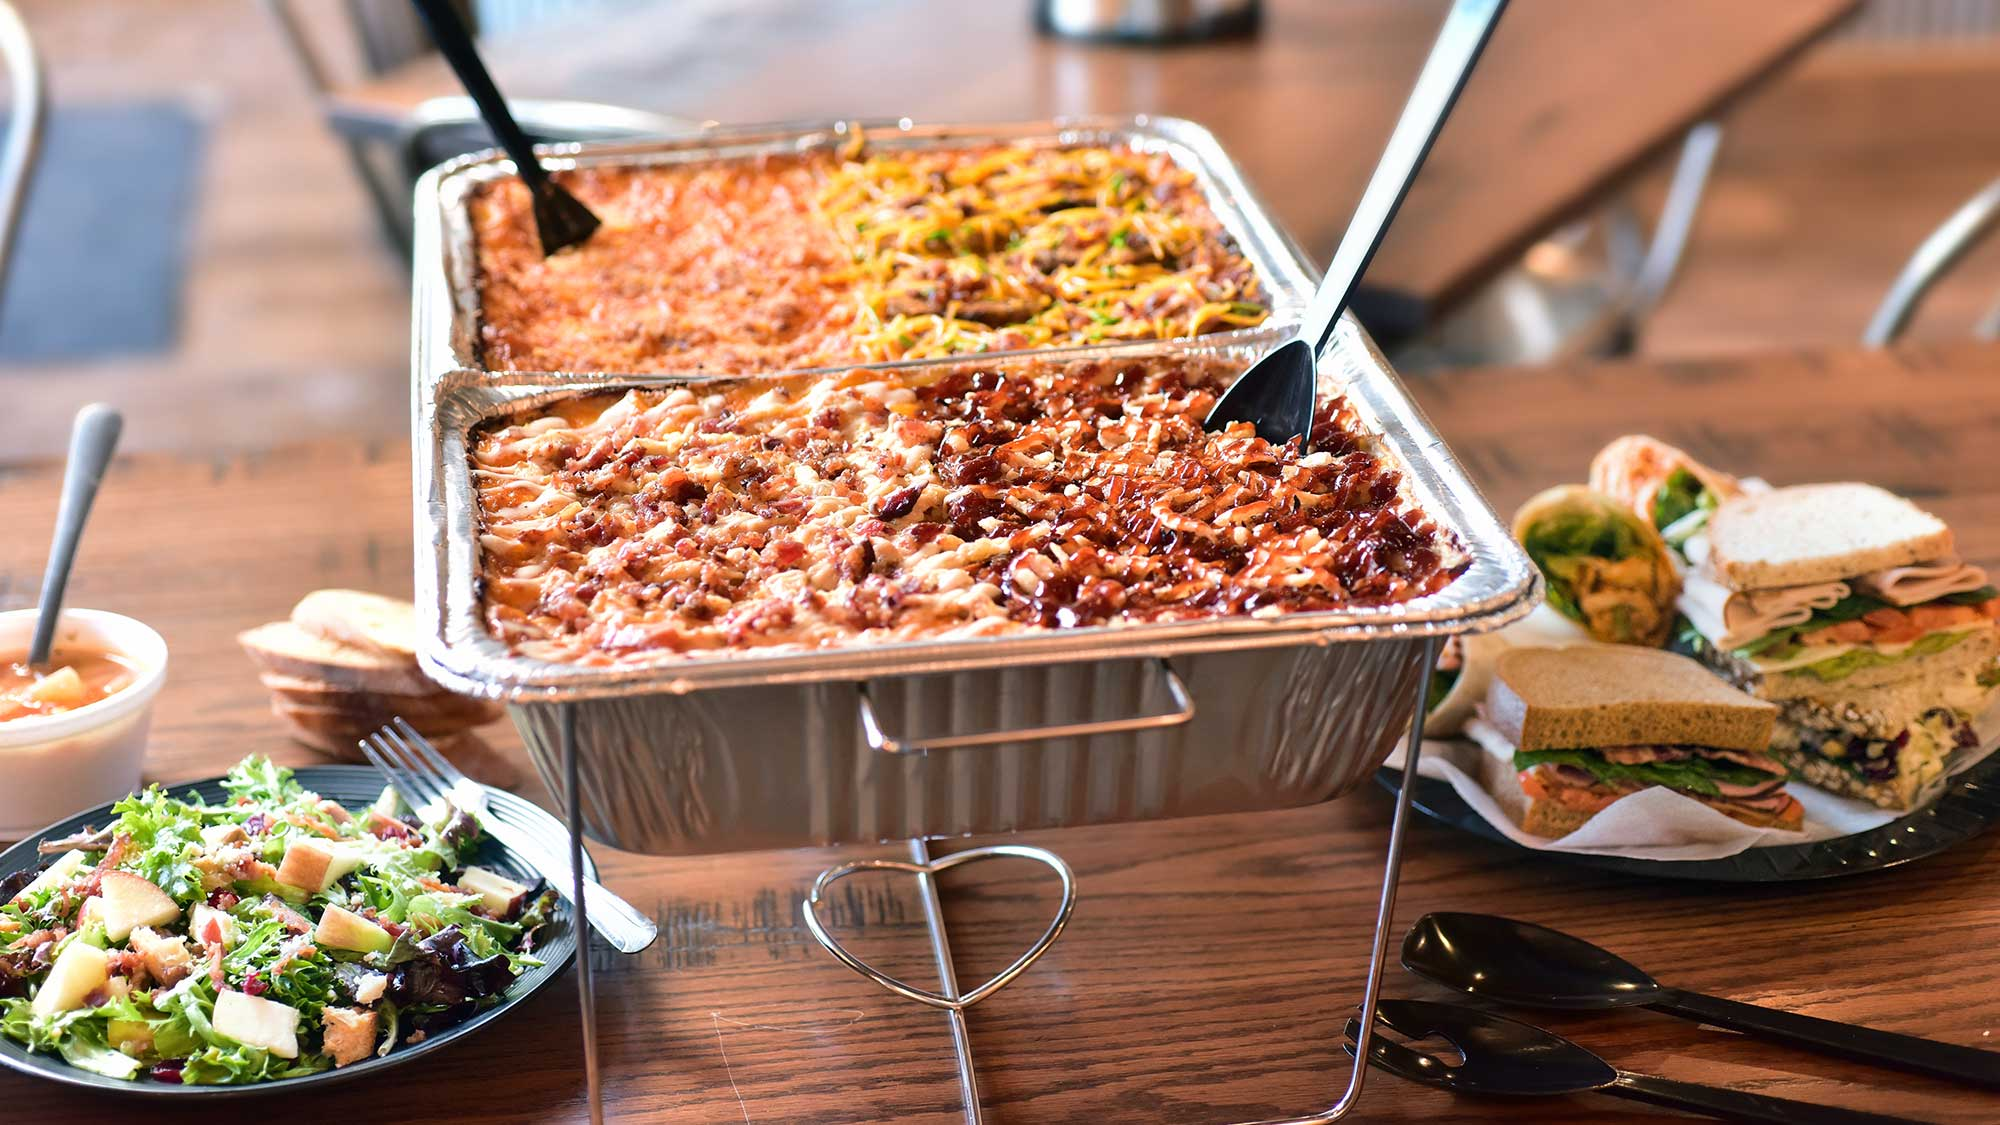 Relevant Questions For Hiring Wedding Catering Services